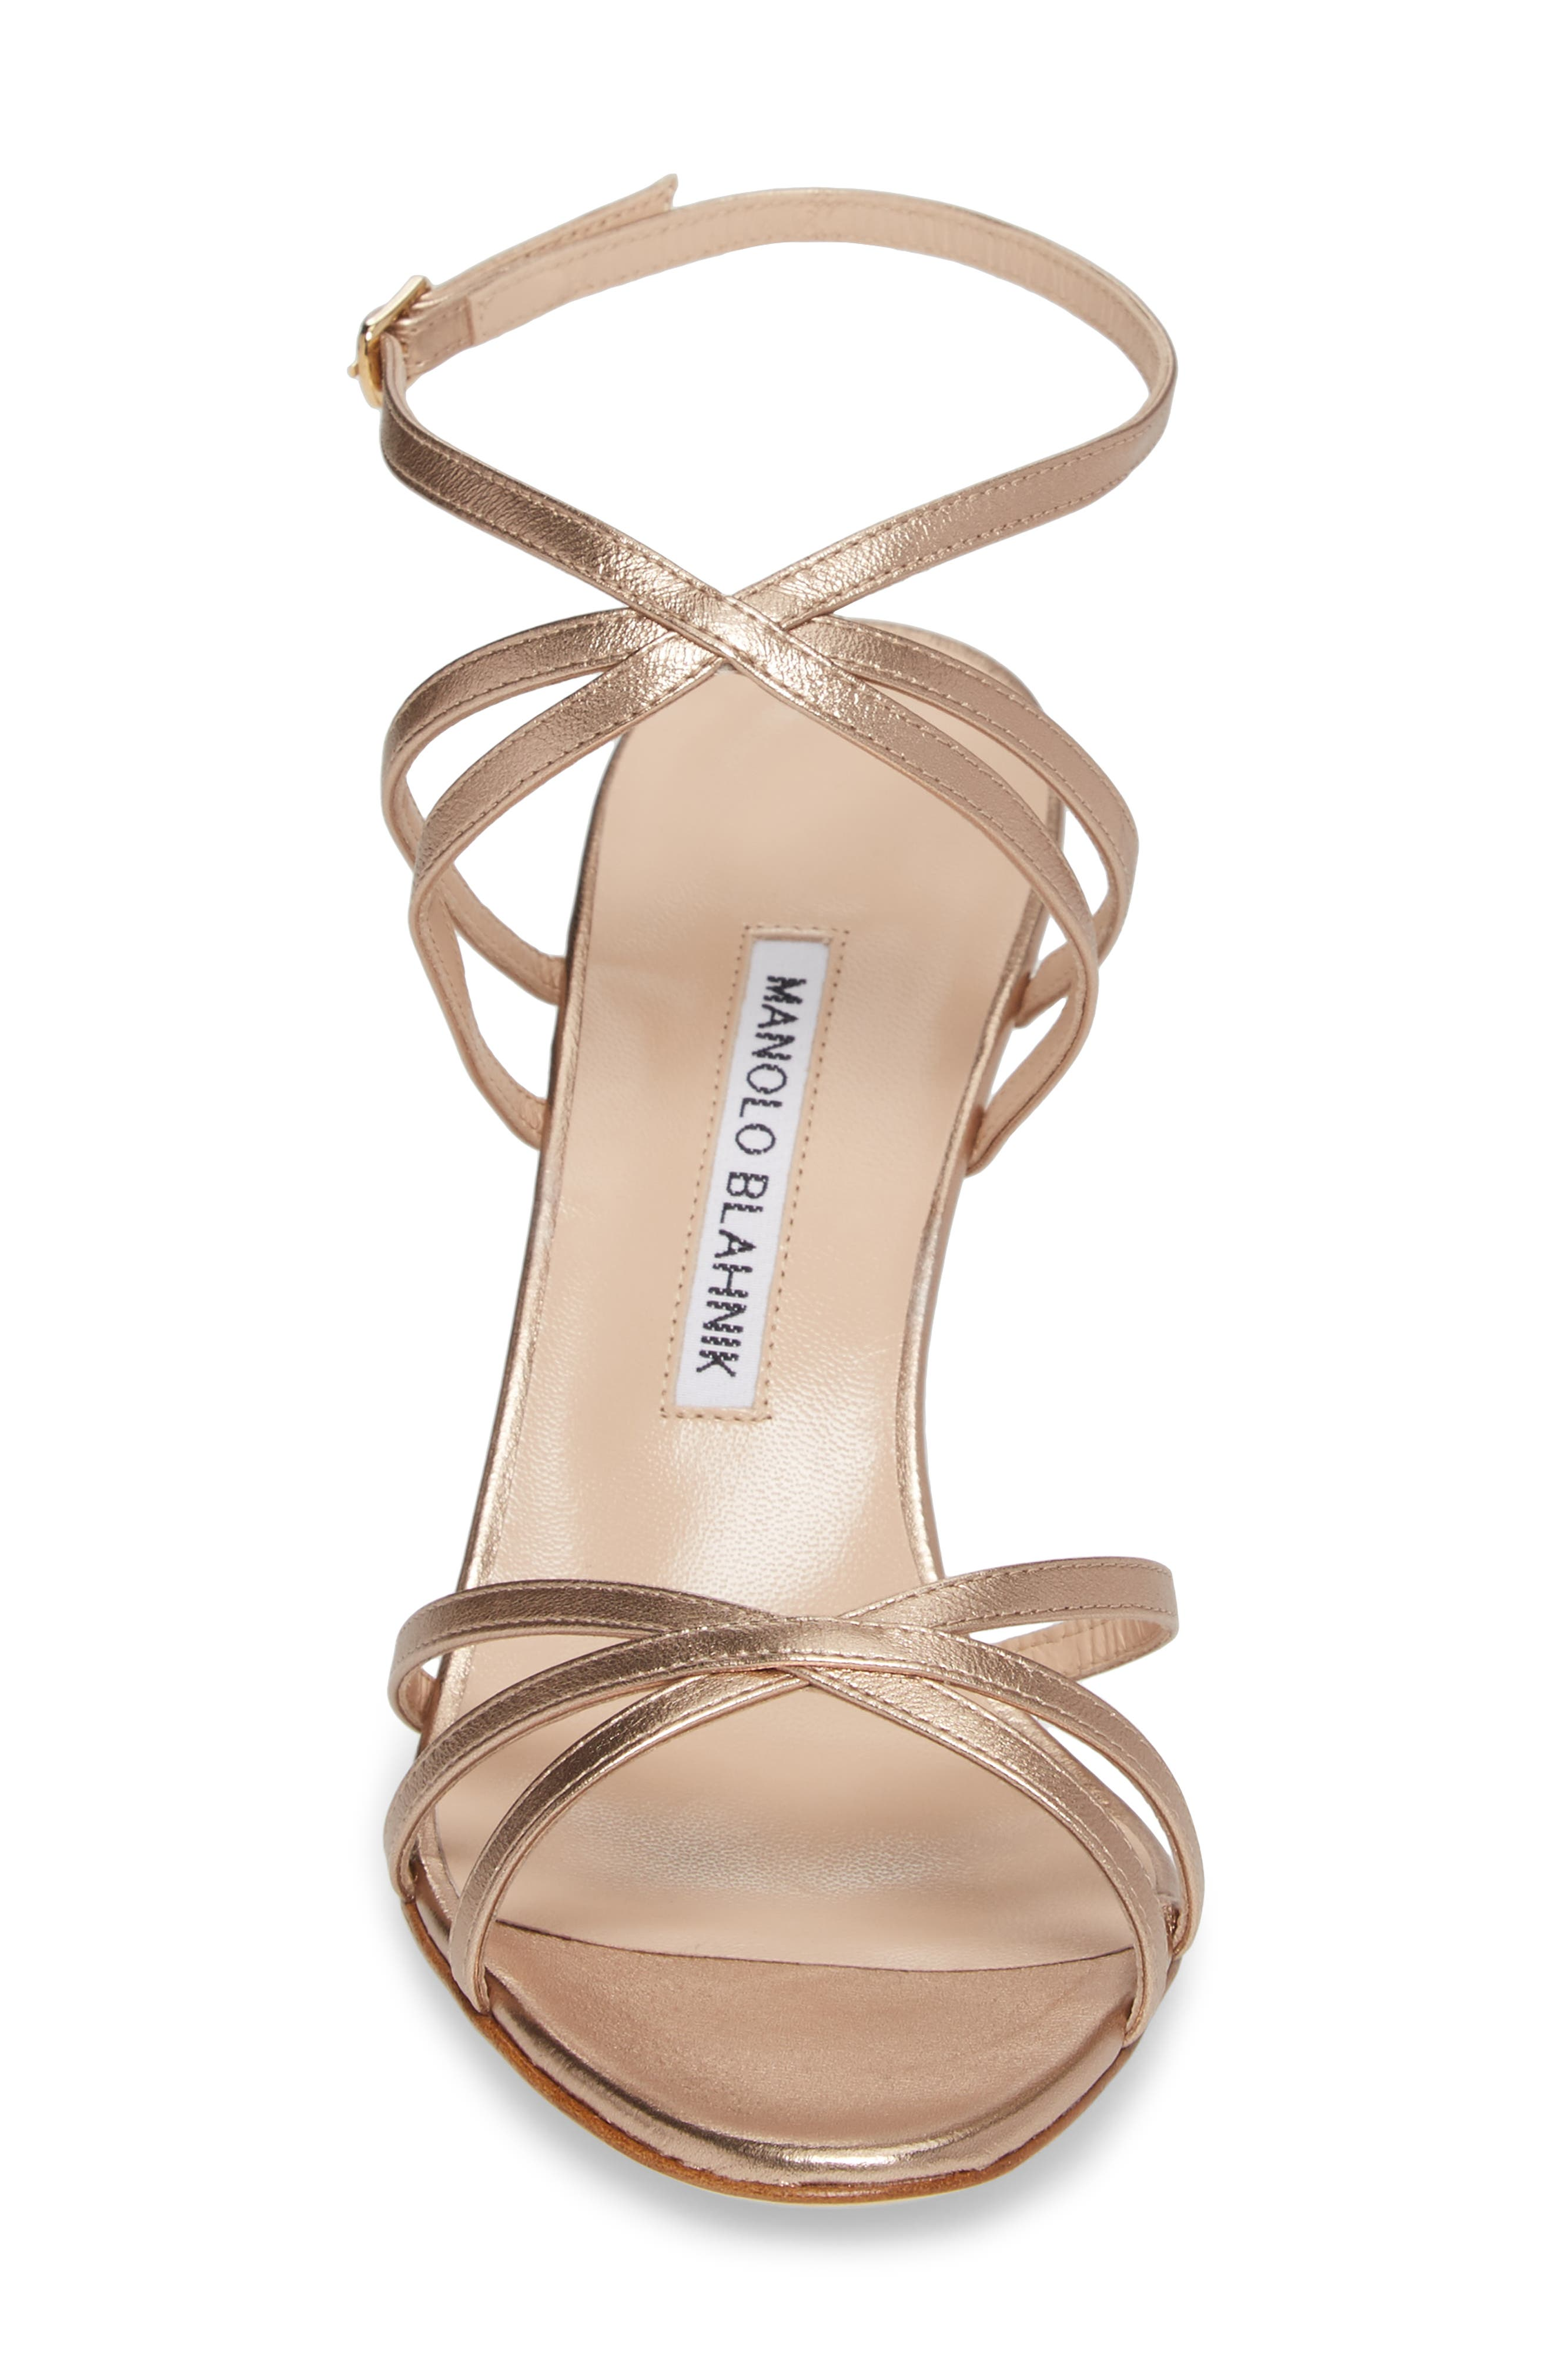 3e9141887b9 MANOLO BLAHNIK Naro Strappy Metallic Leather Sandal .